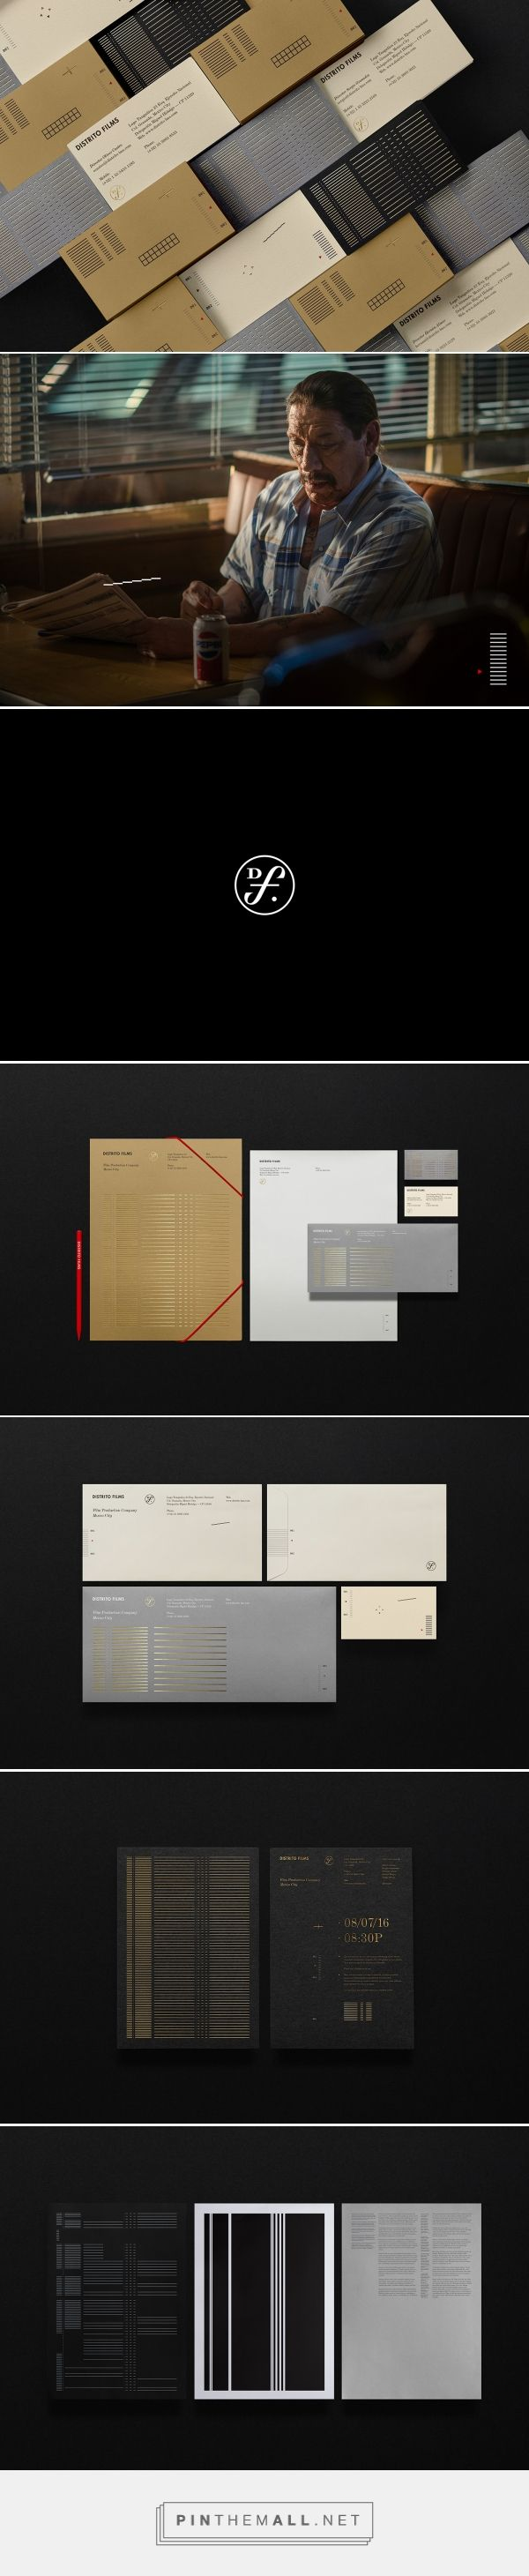 Distrito Films on Behance... - a grouped images picture - Pin Them All